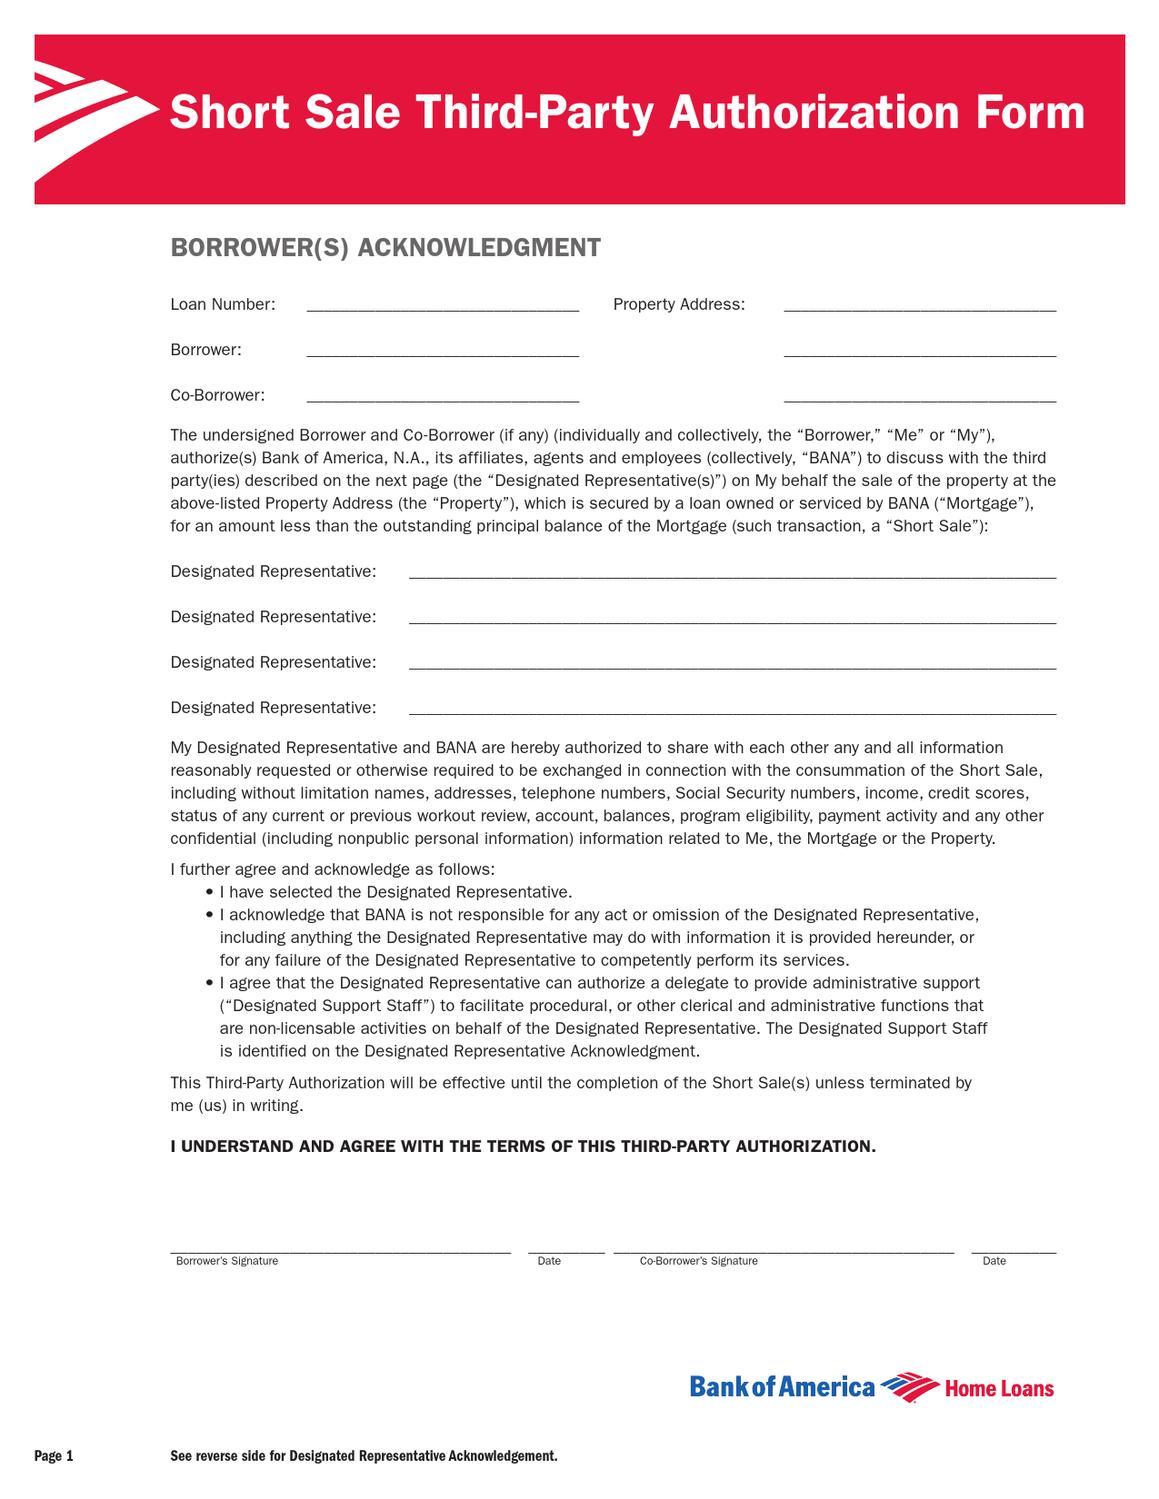 bank of america authorization to release information form short sale